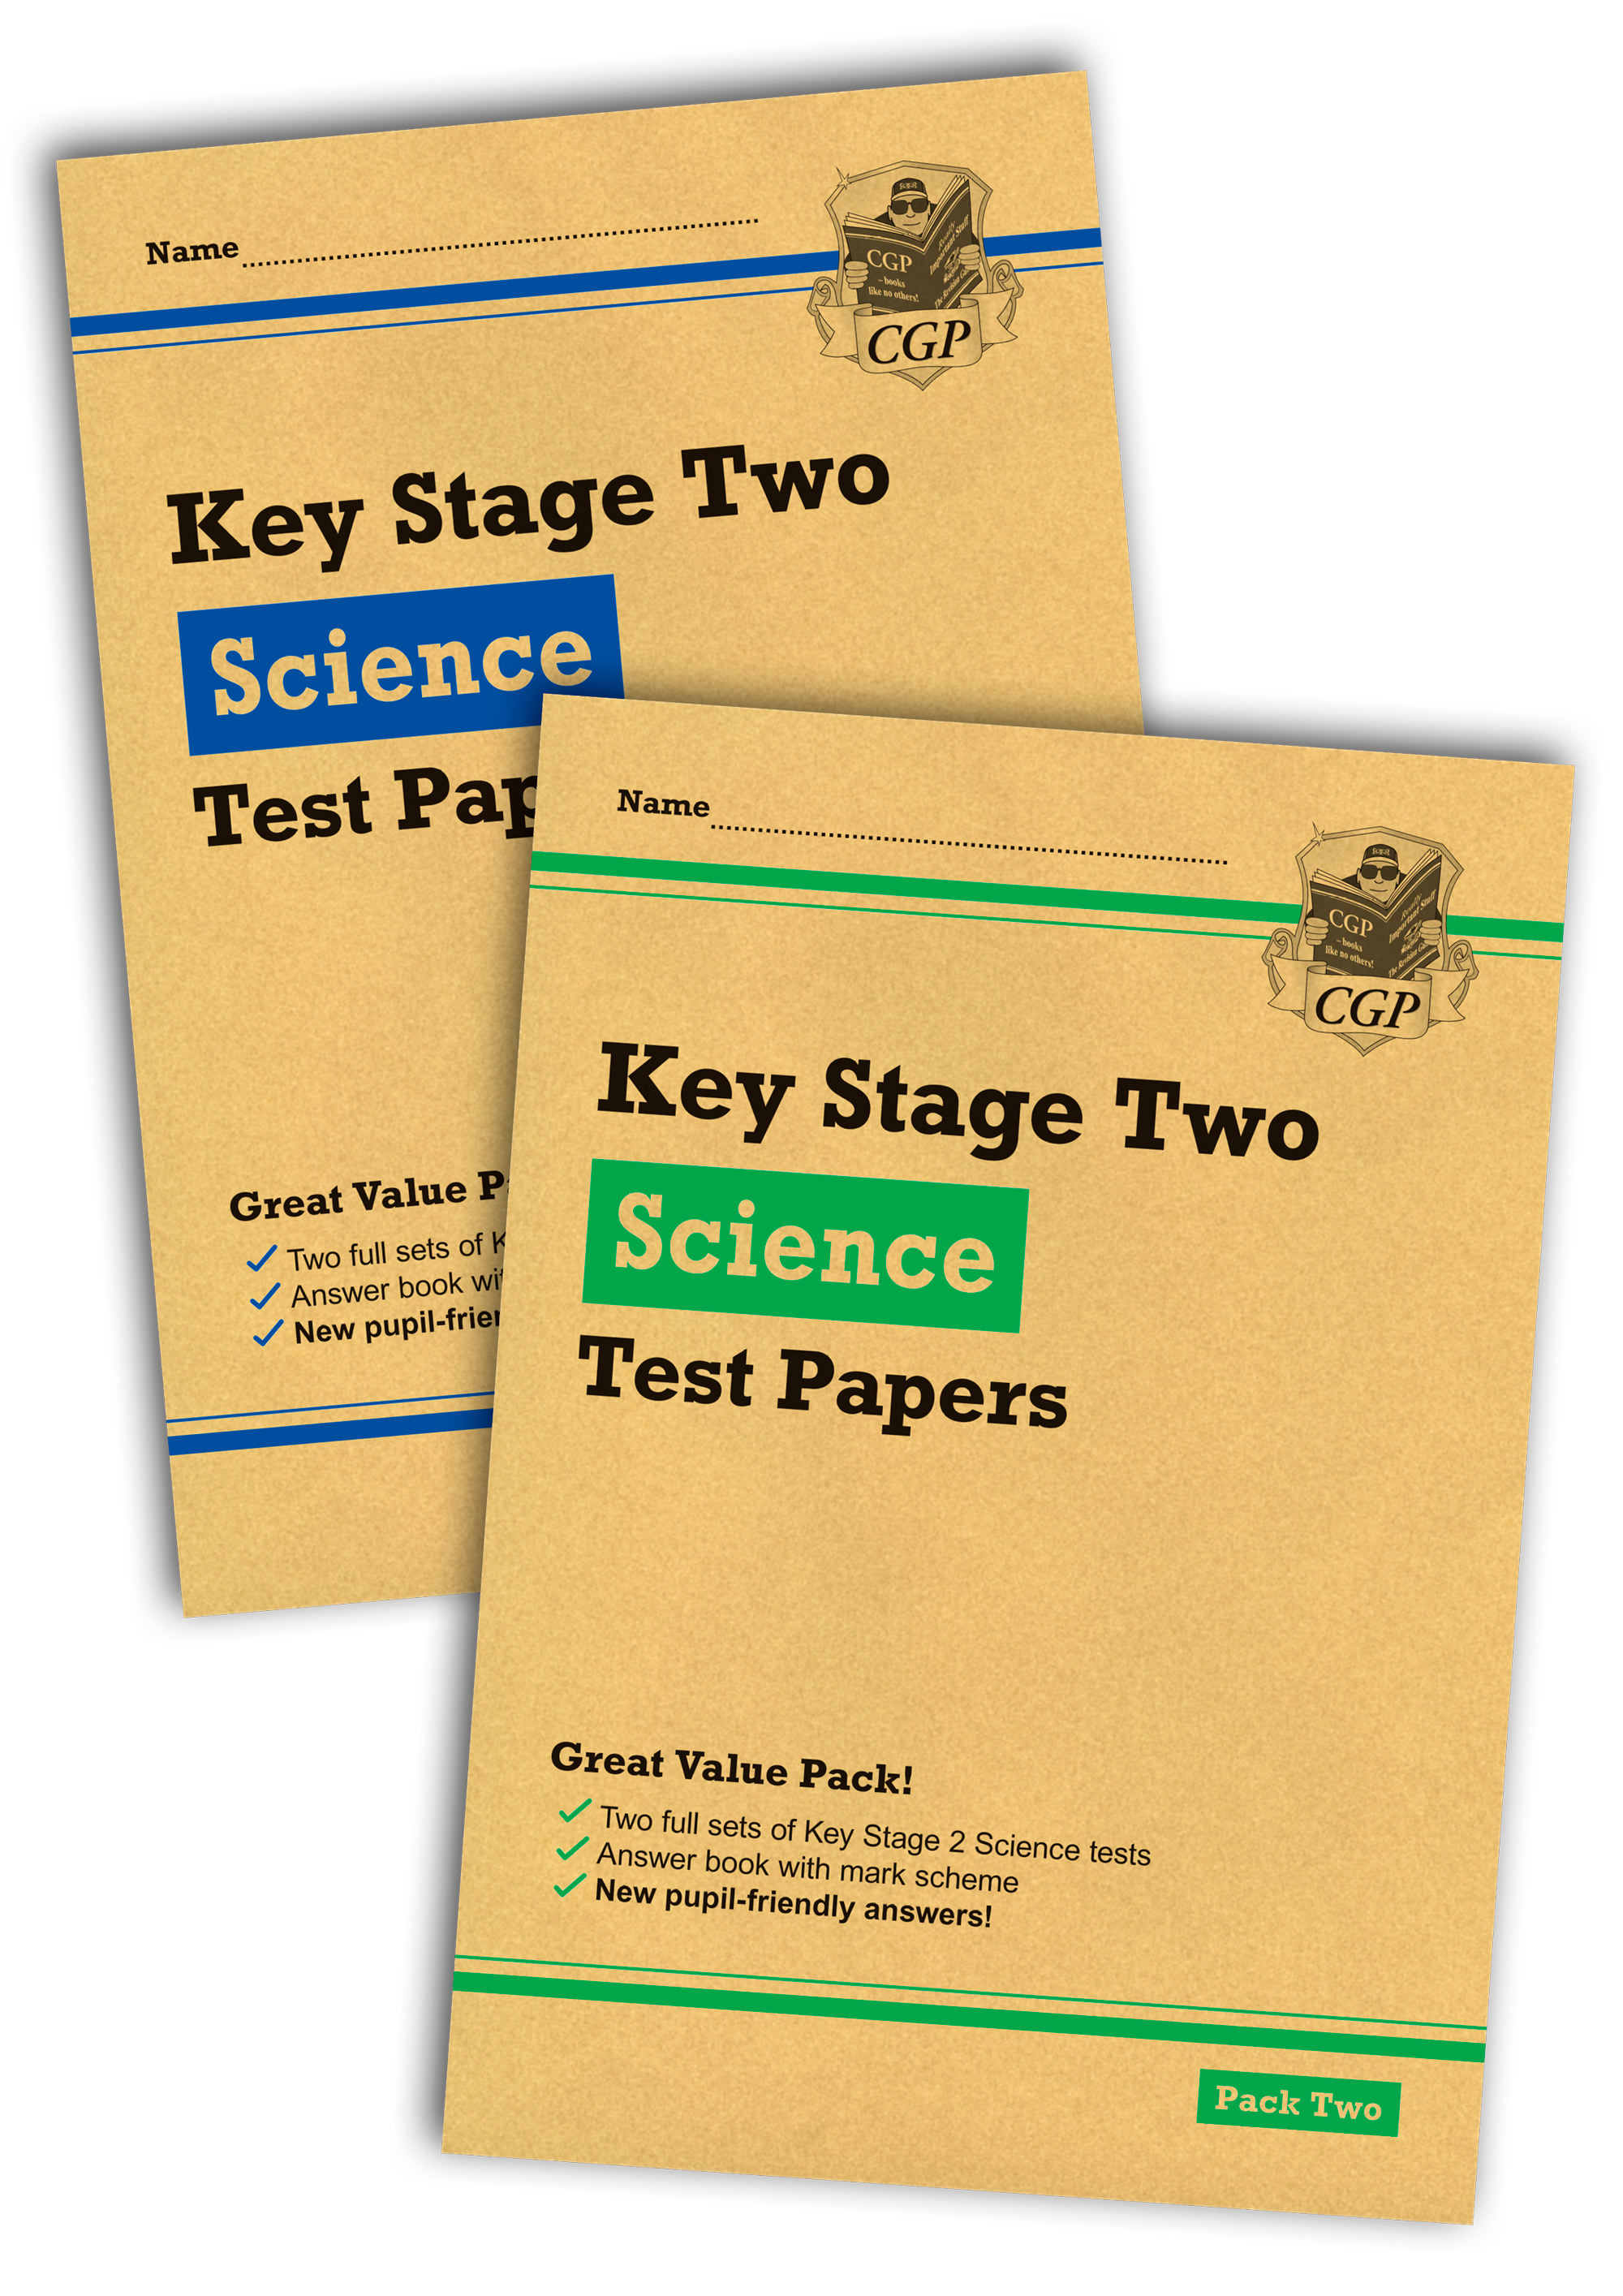 SHB2P23 - New KS2 Science Test Bundle: Pack 1 & 2 (for the 2020 tests)